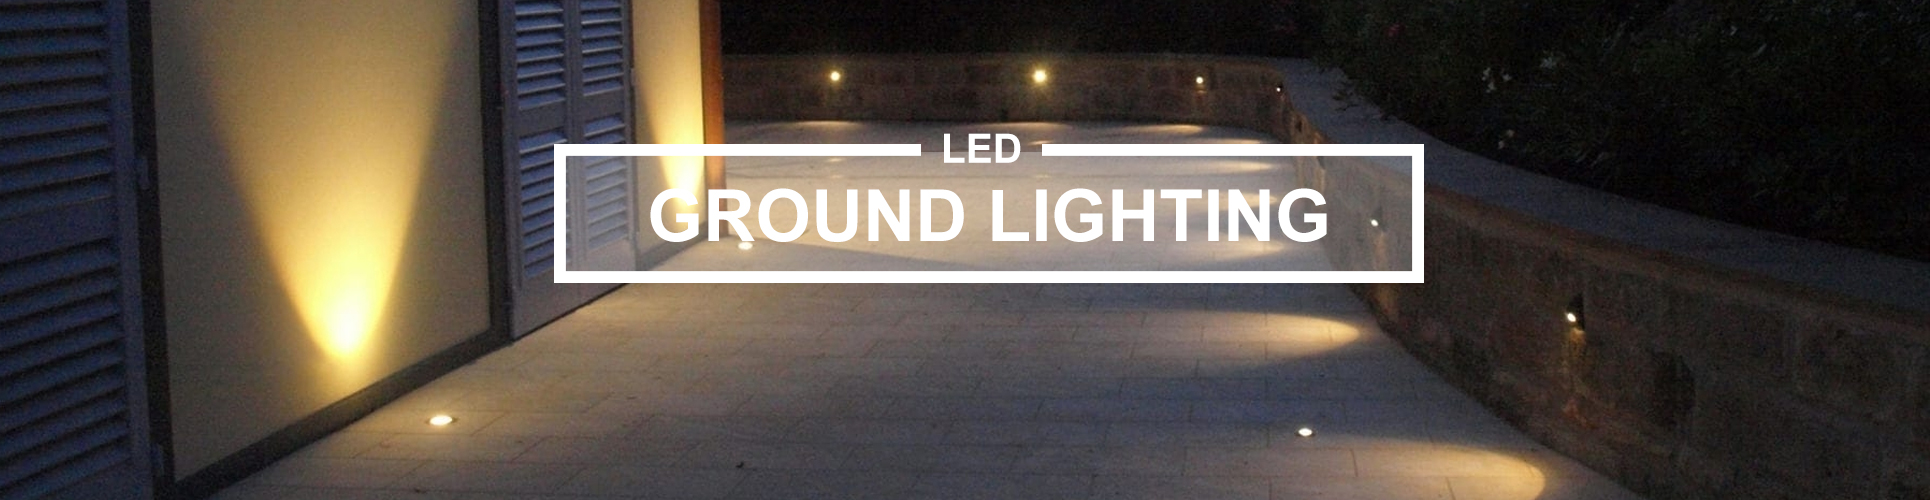 Ground lighting